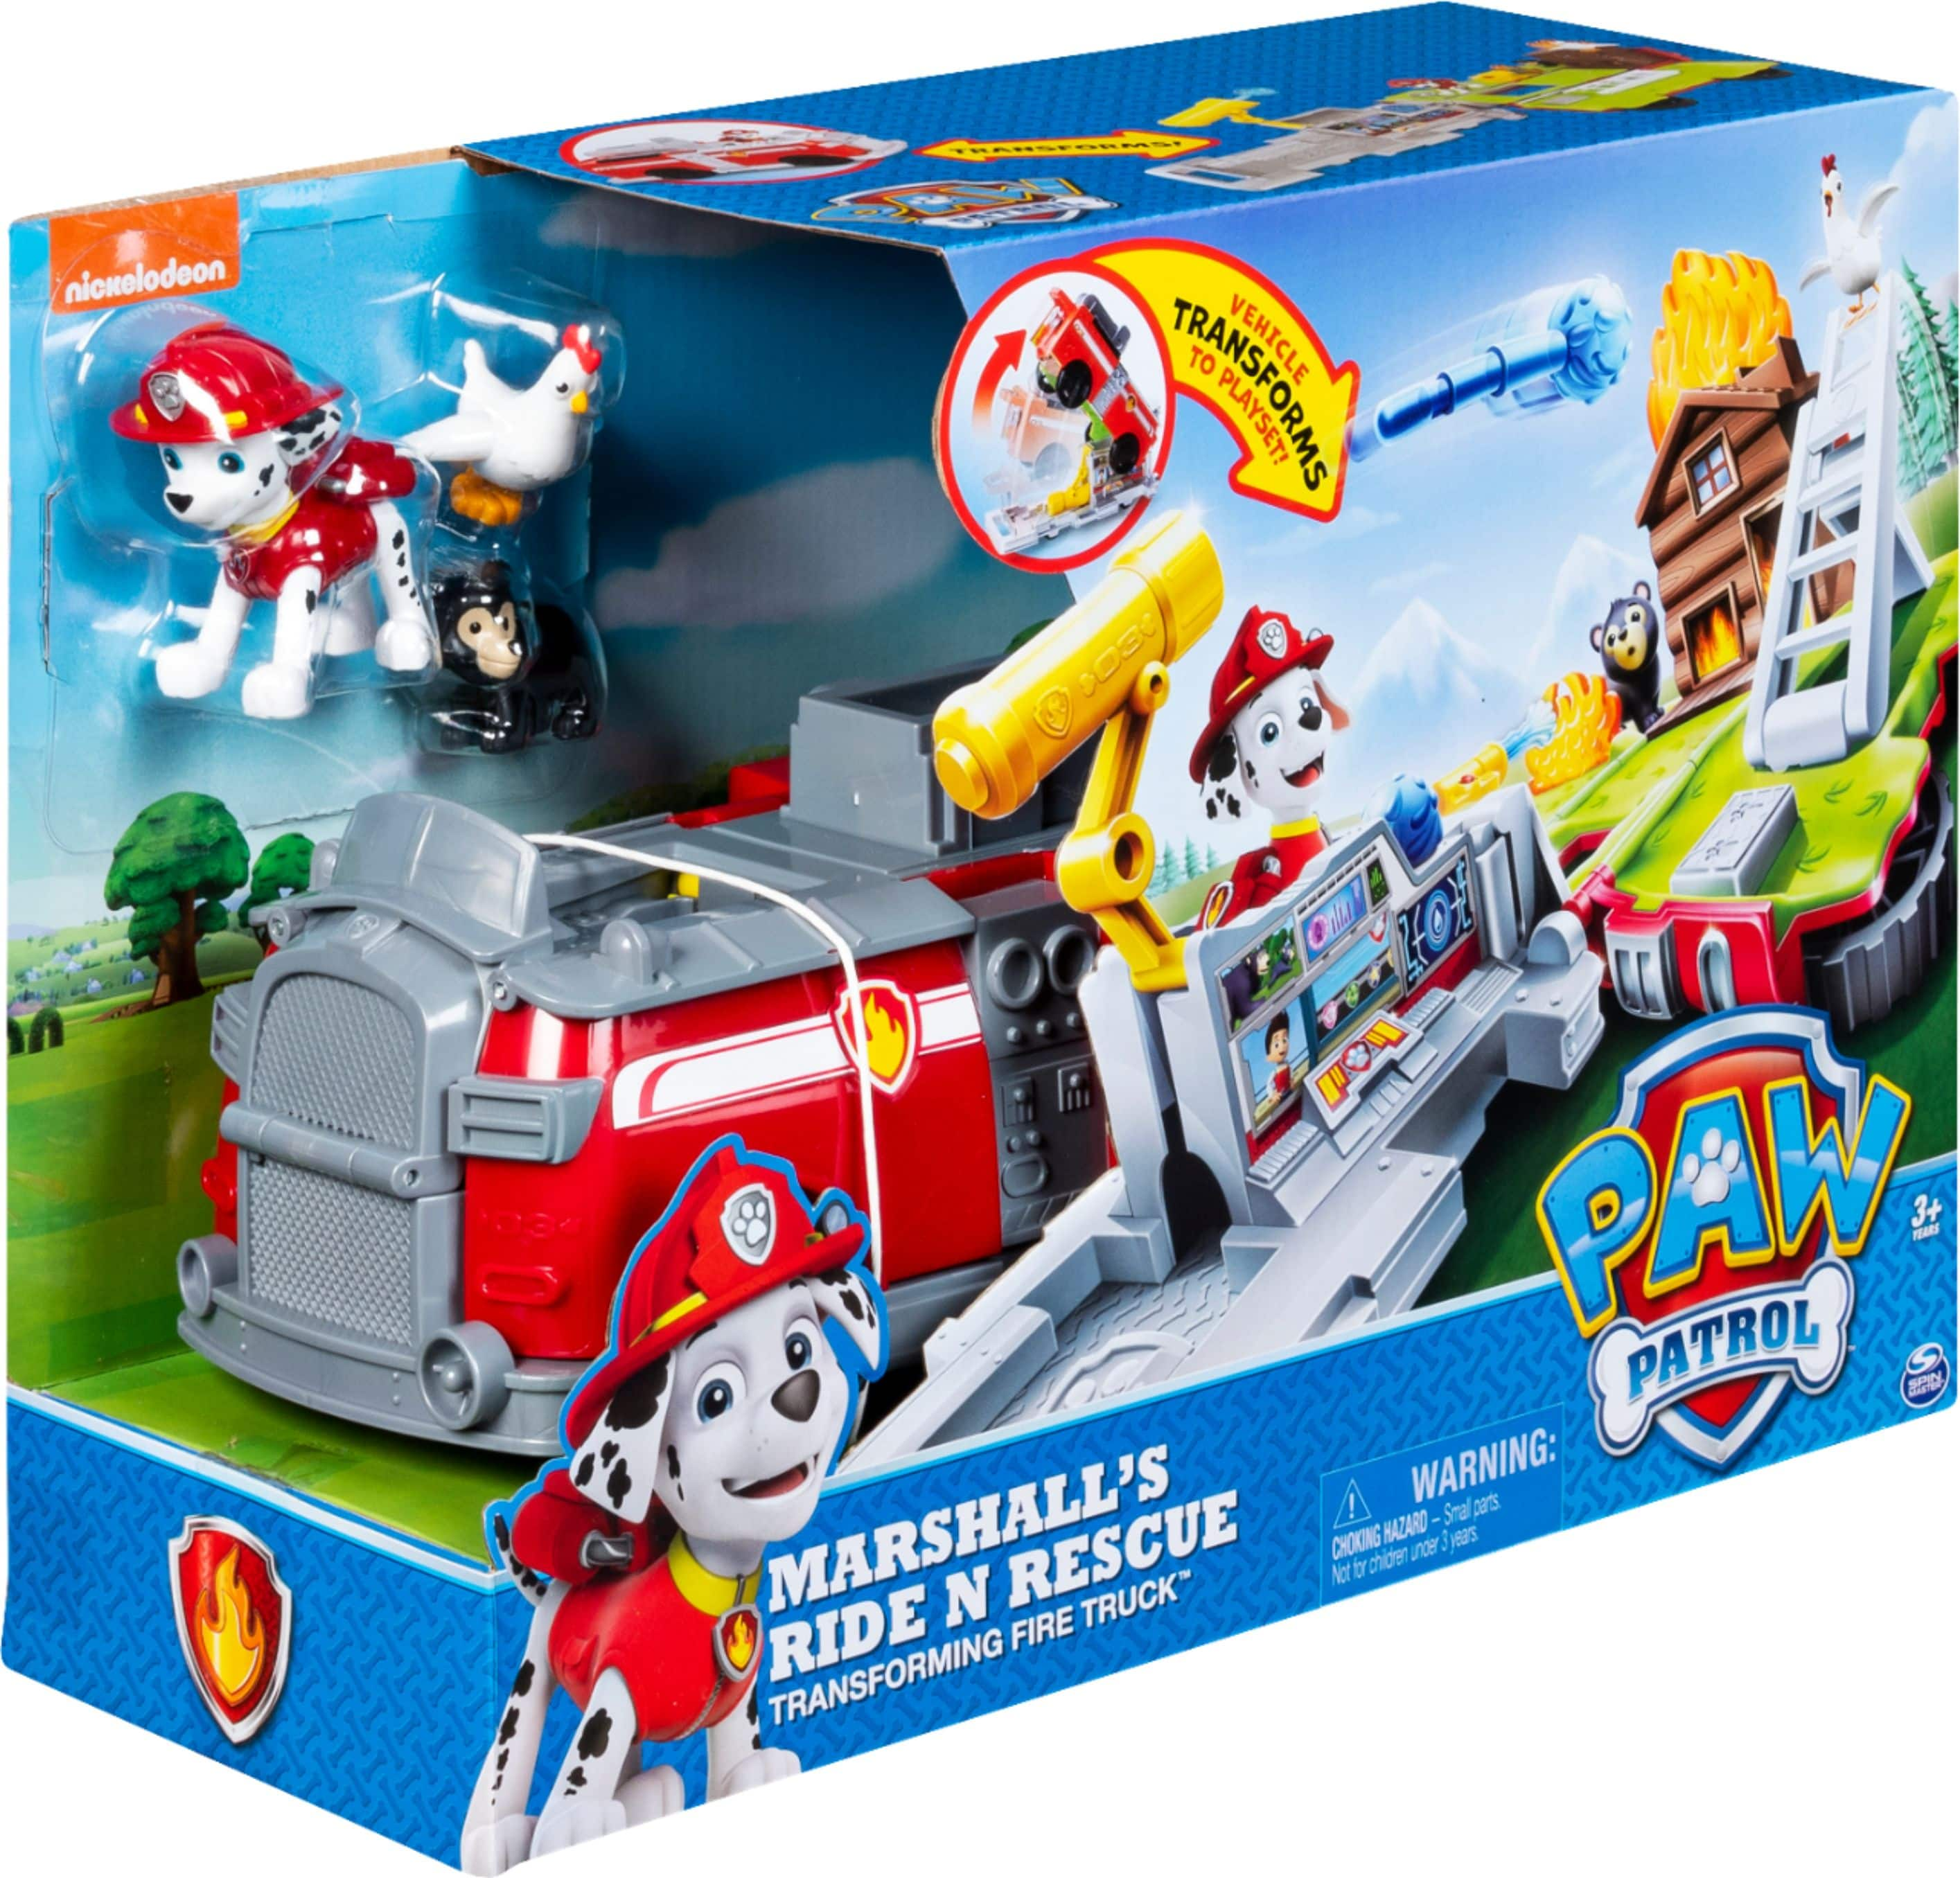 Best Buy: Paw Patrol - Ride 'n' Rescue 2-in-1 Playset $12.99 (Reg. $25)